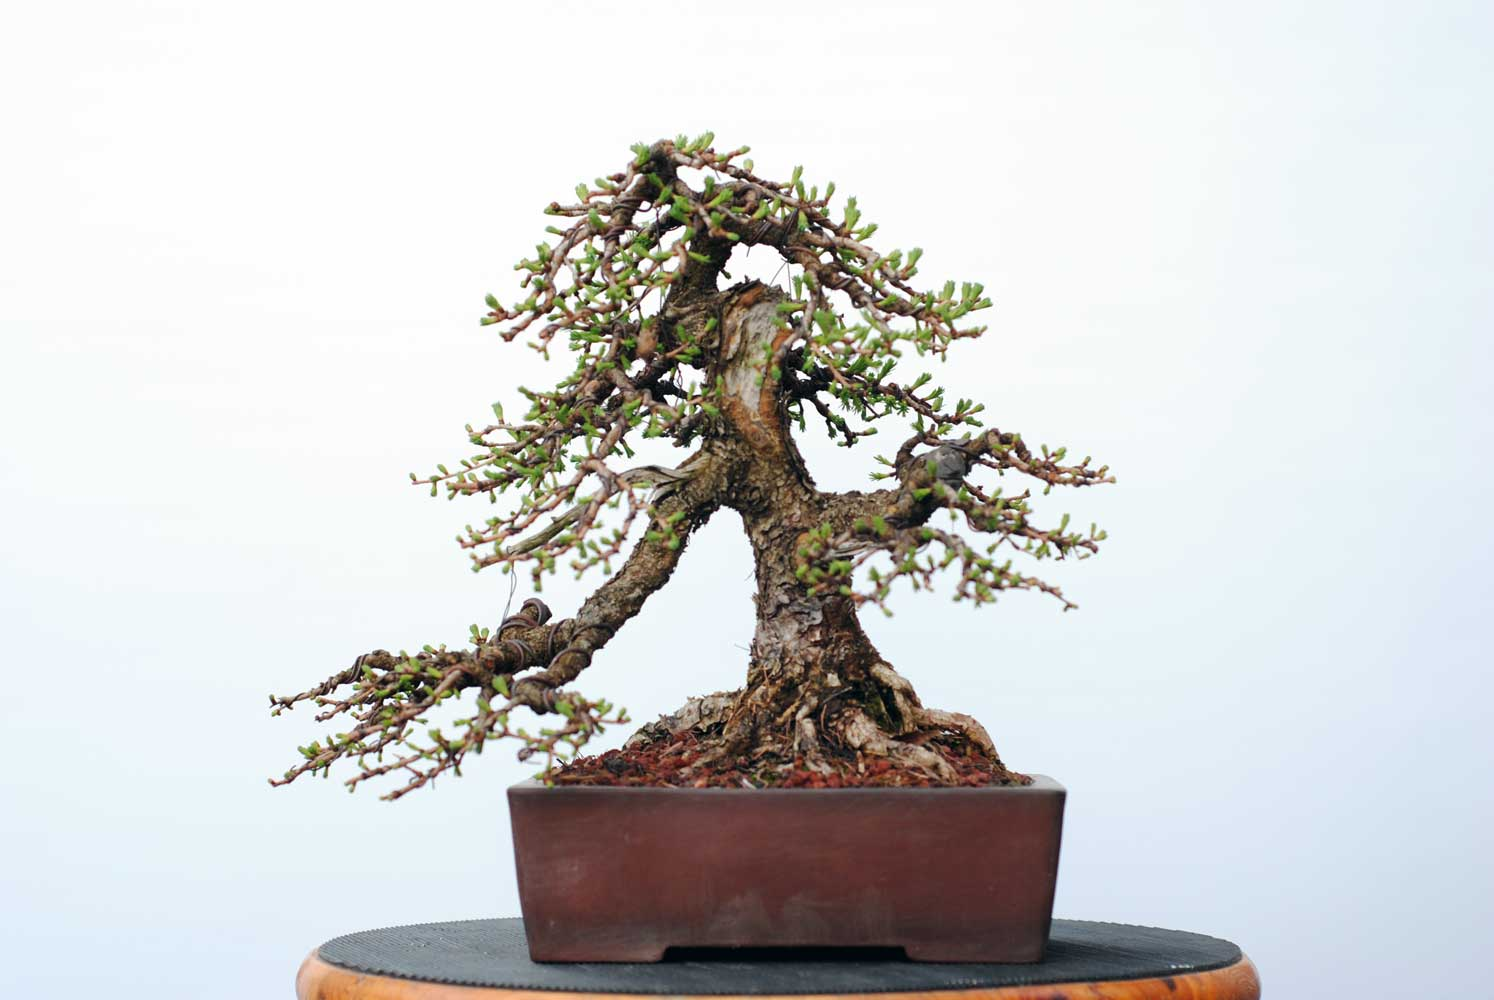 Tamarack Lakeshore Bonsai In Toronto Canada Wiring Demo This Tree Was Styled For The First Time Last Spring And Is Developing Quickly